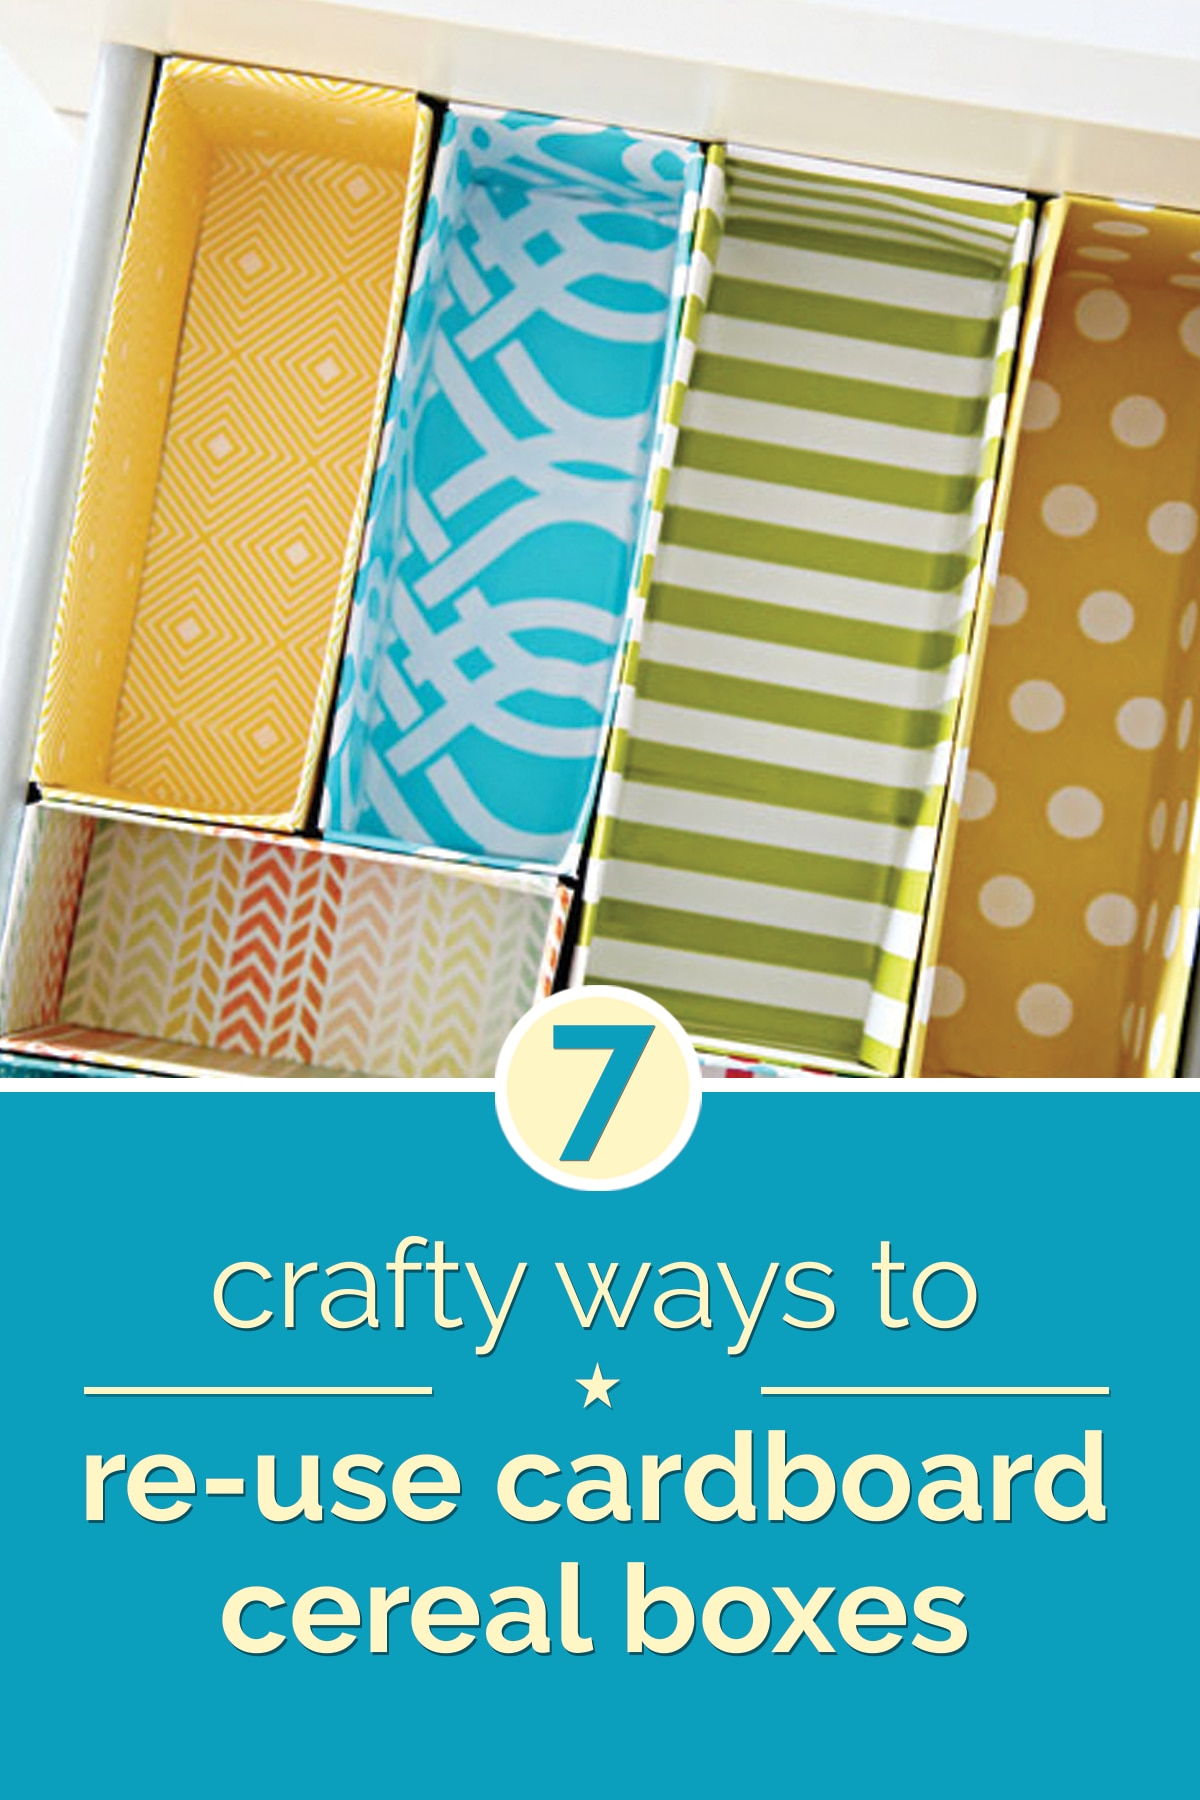 7 crafty ways to reuse cardboard cereal boxes thegoodstuff for What to make out of cereal boxes